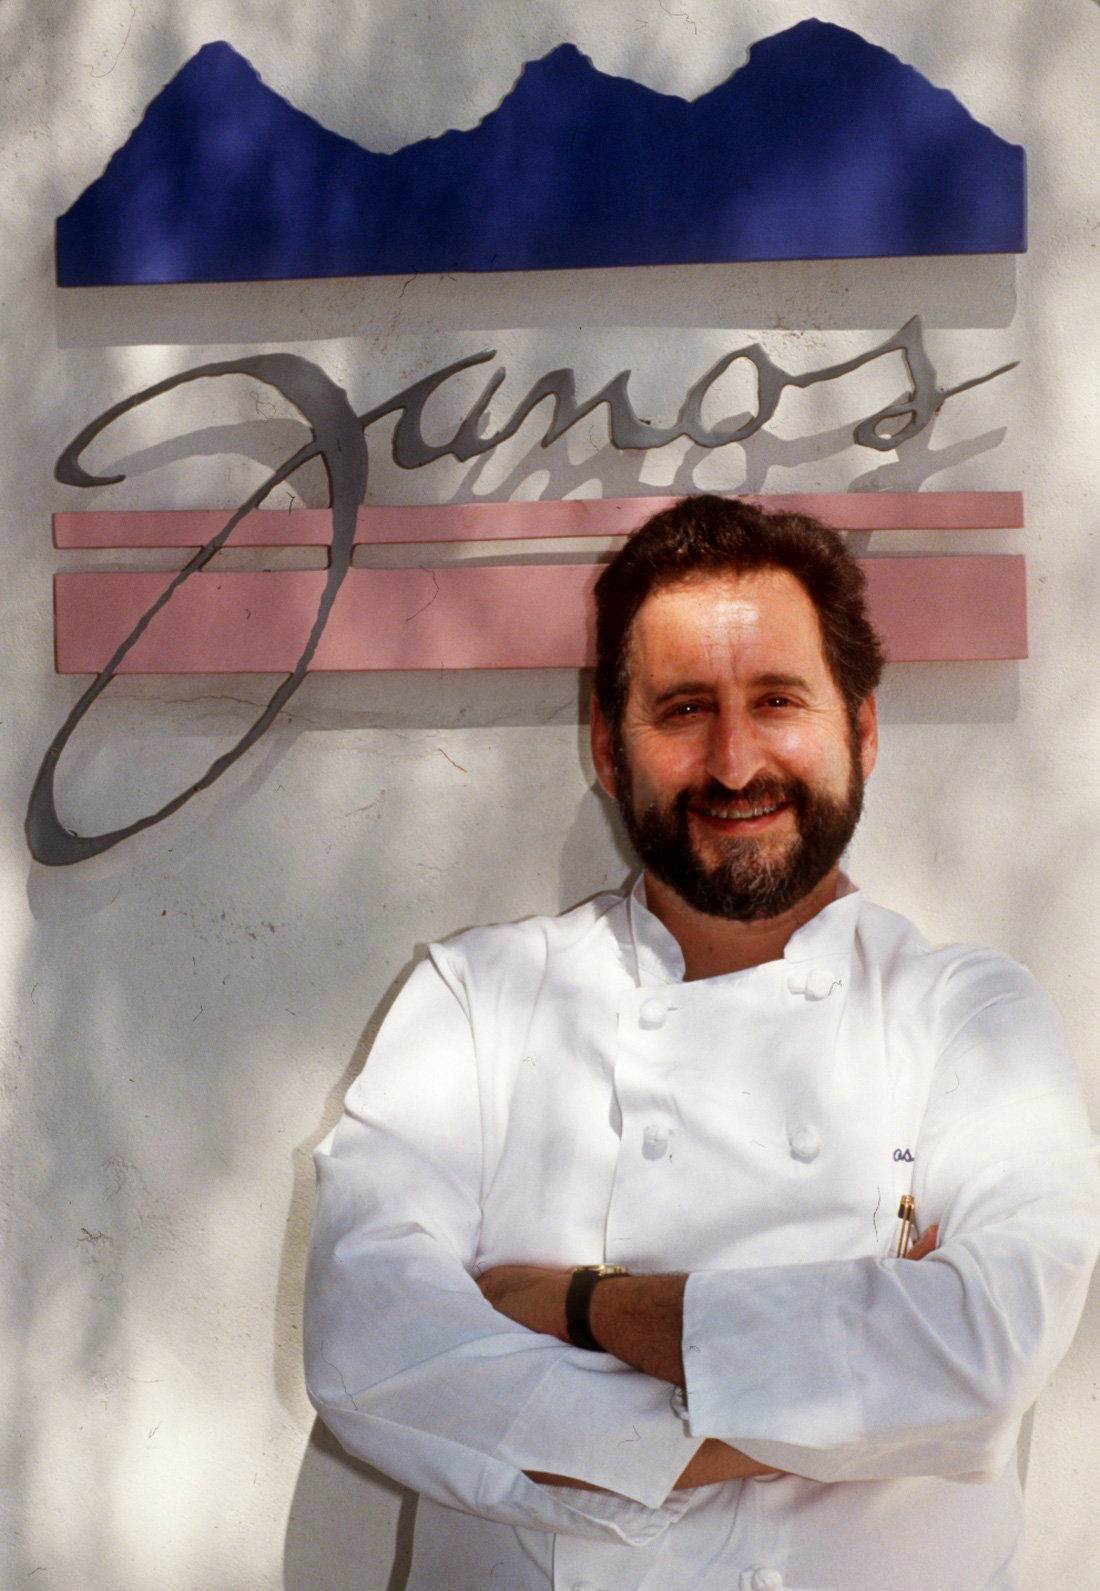 Tucson chef Janos Wilder